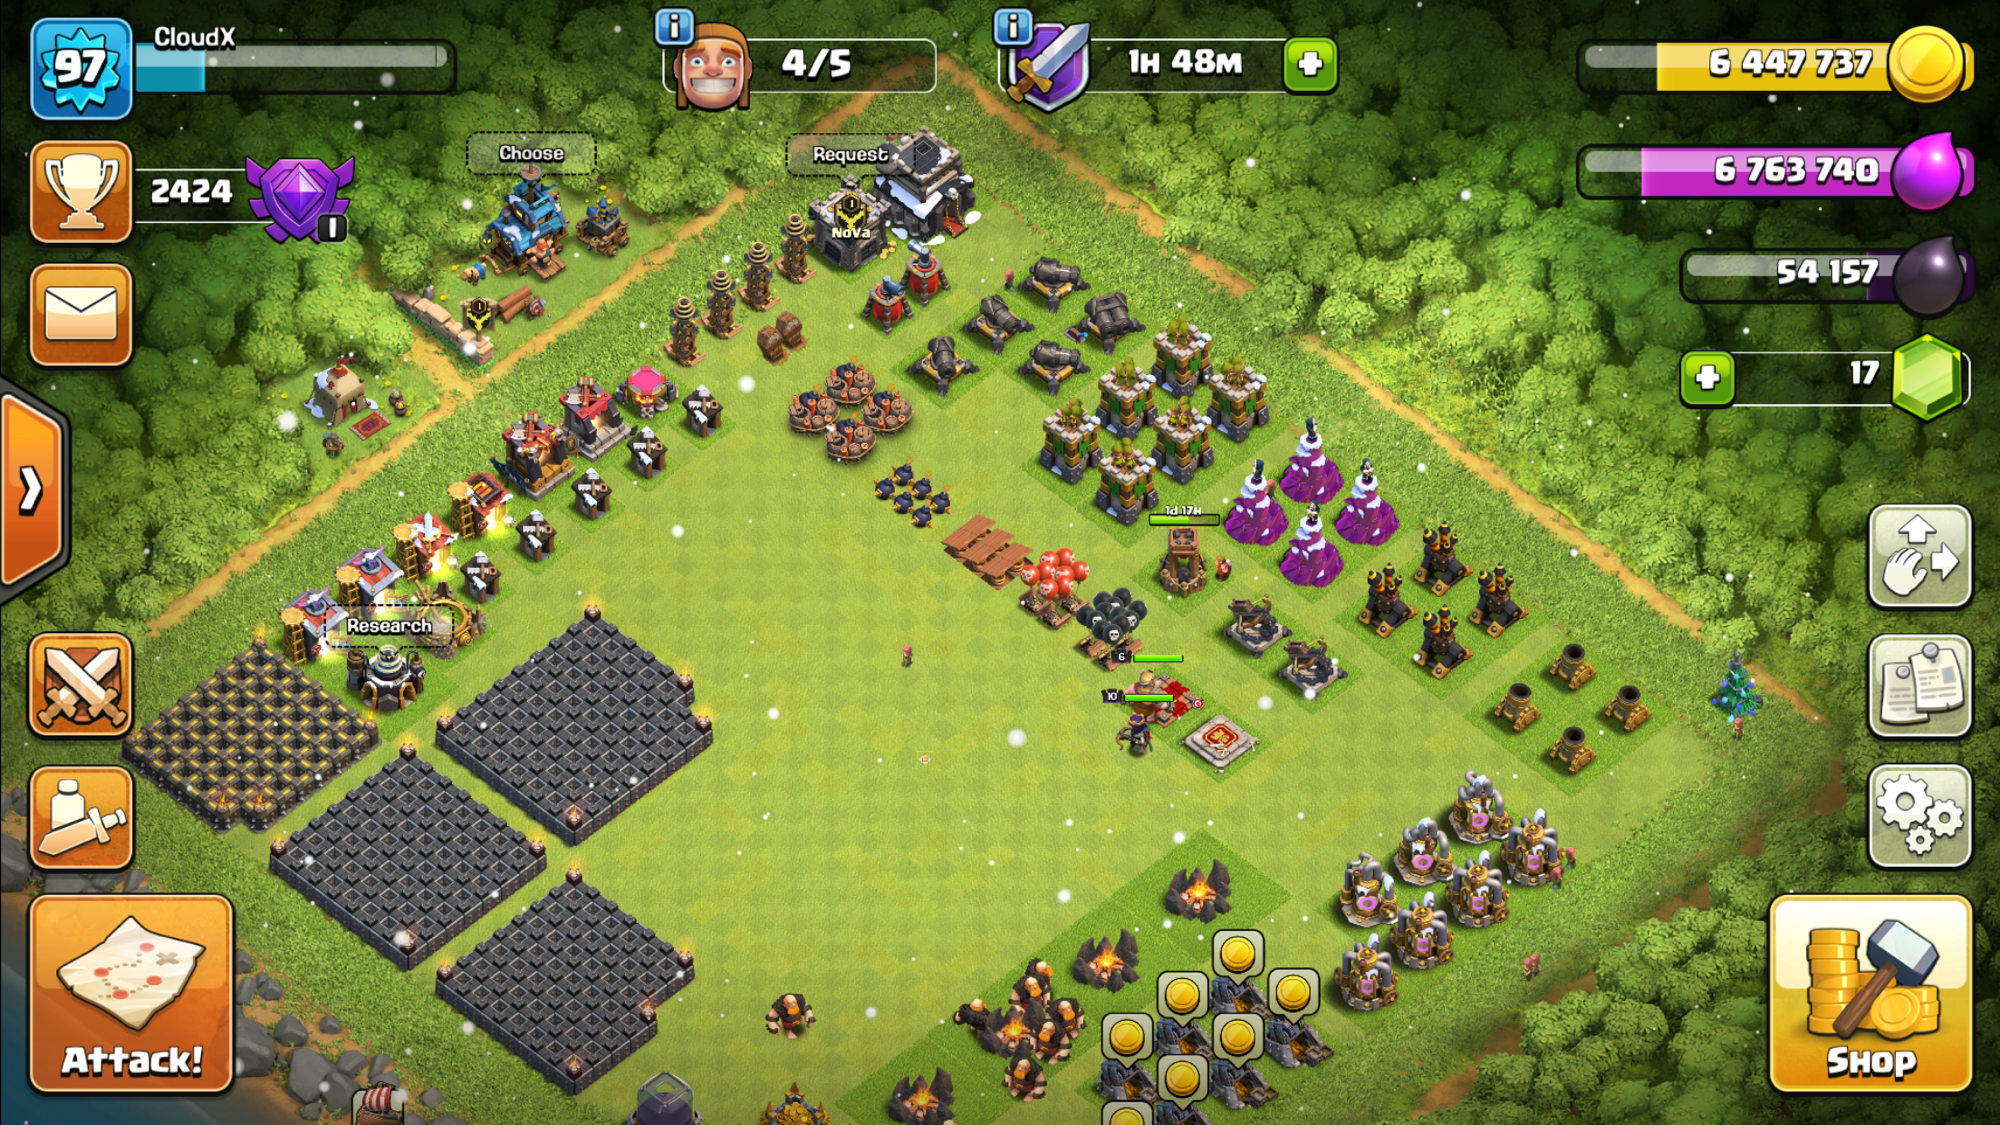 What should I upgrade next for defense only!